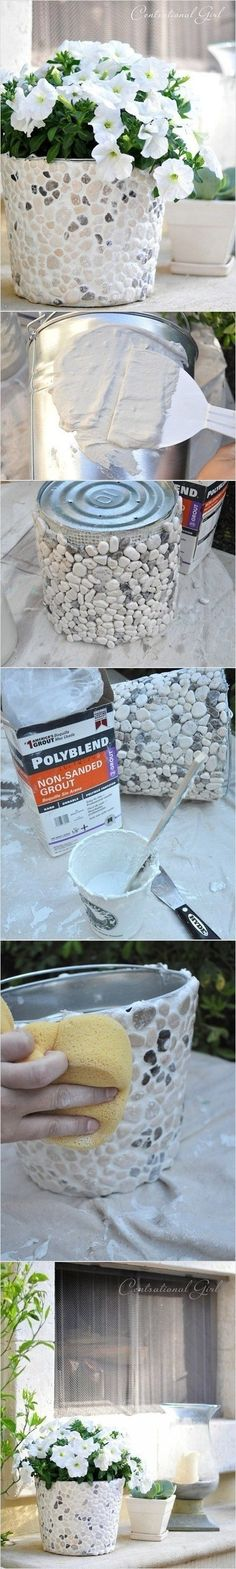 How to make your own stone flower pot | tutorial in picture